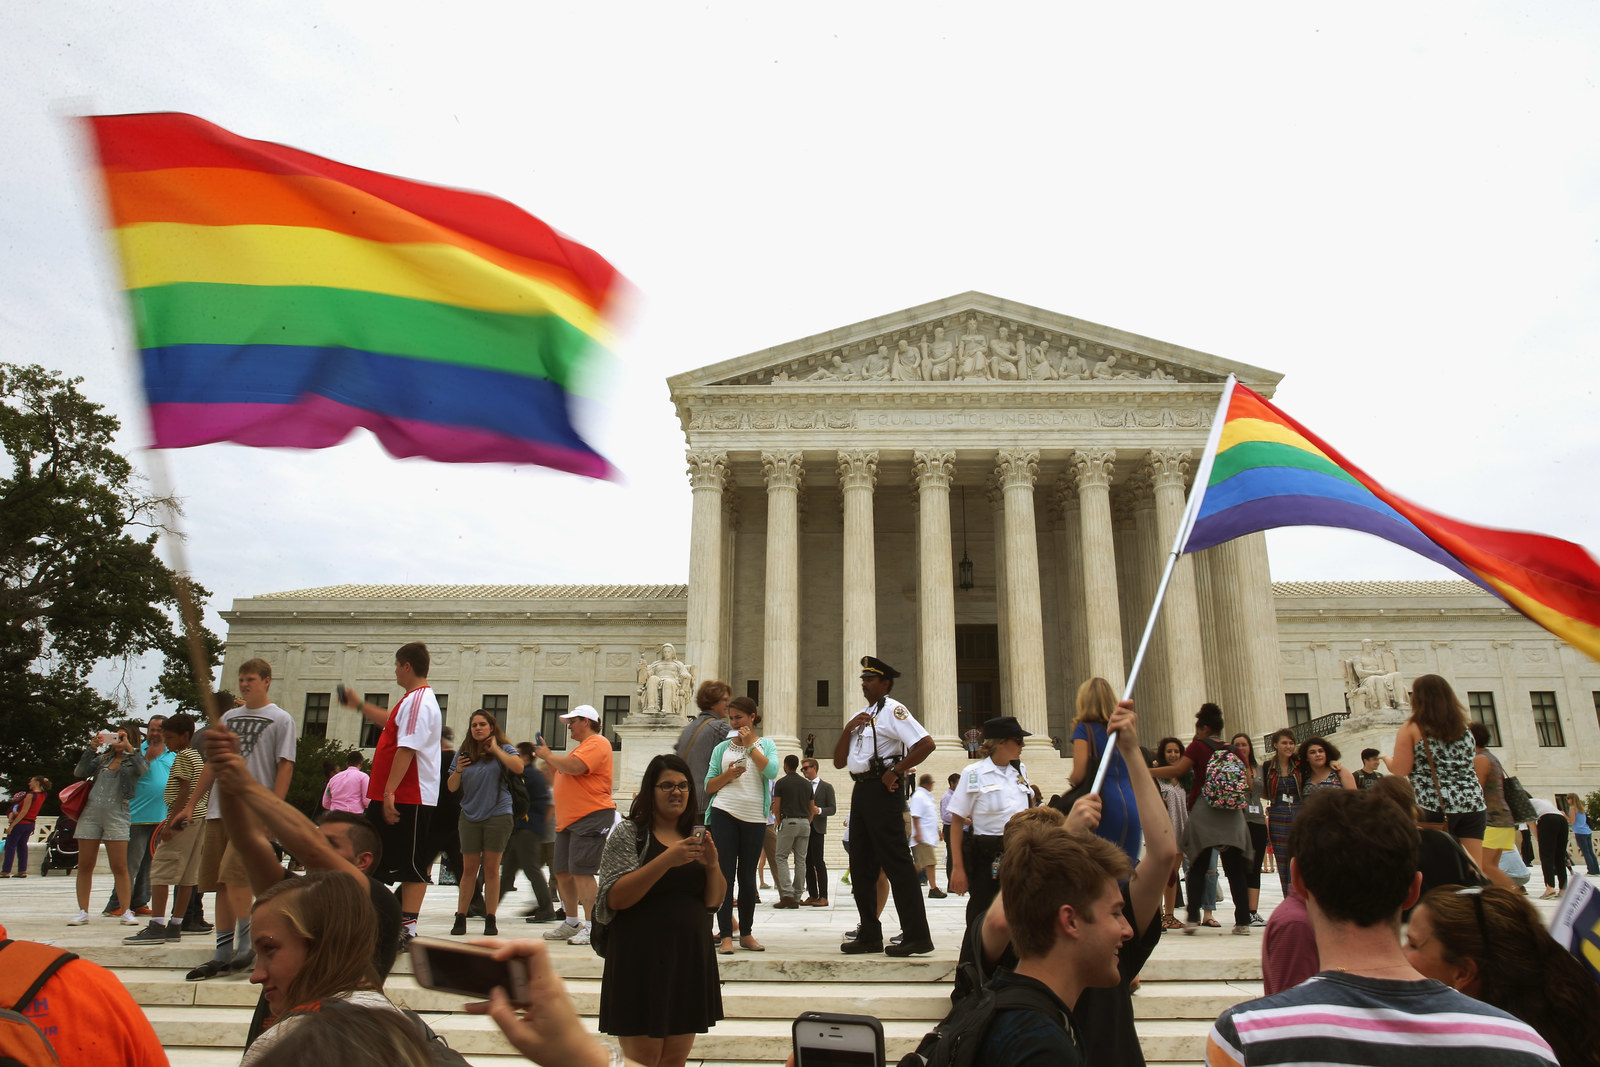 A Florist Who Refused A Gay Couple Just Lost At The Washington State Supreme Court